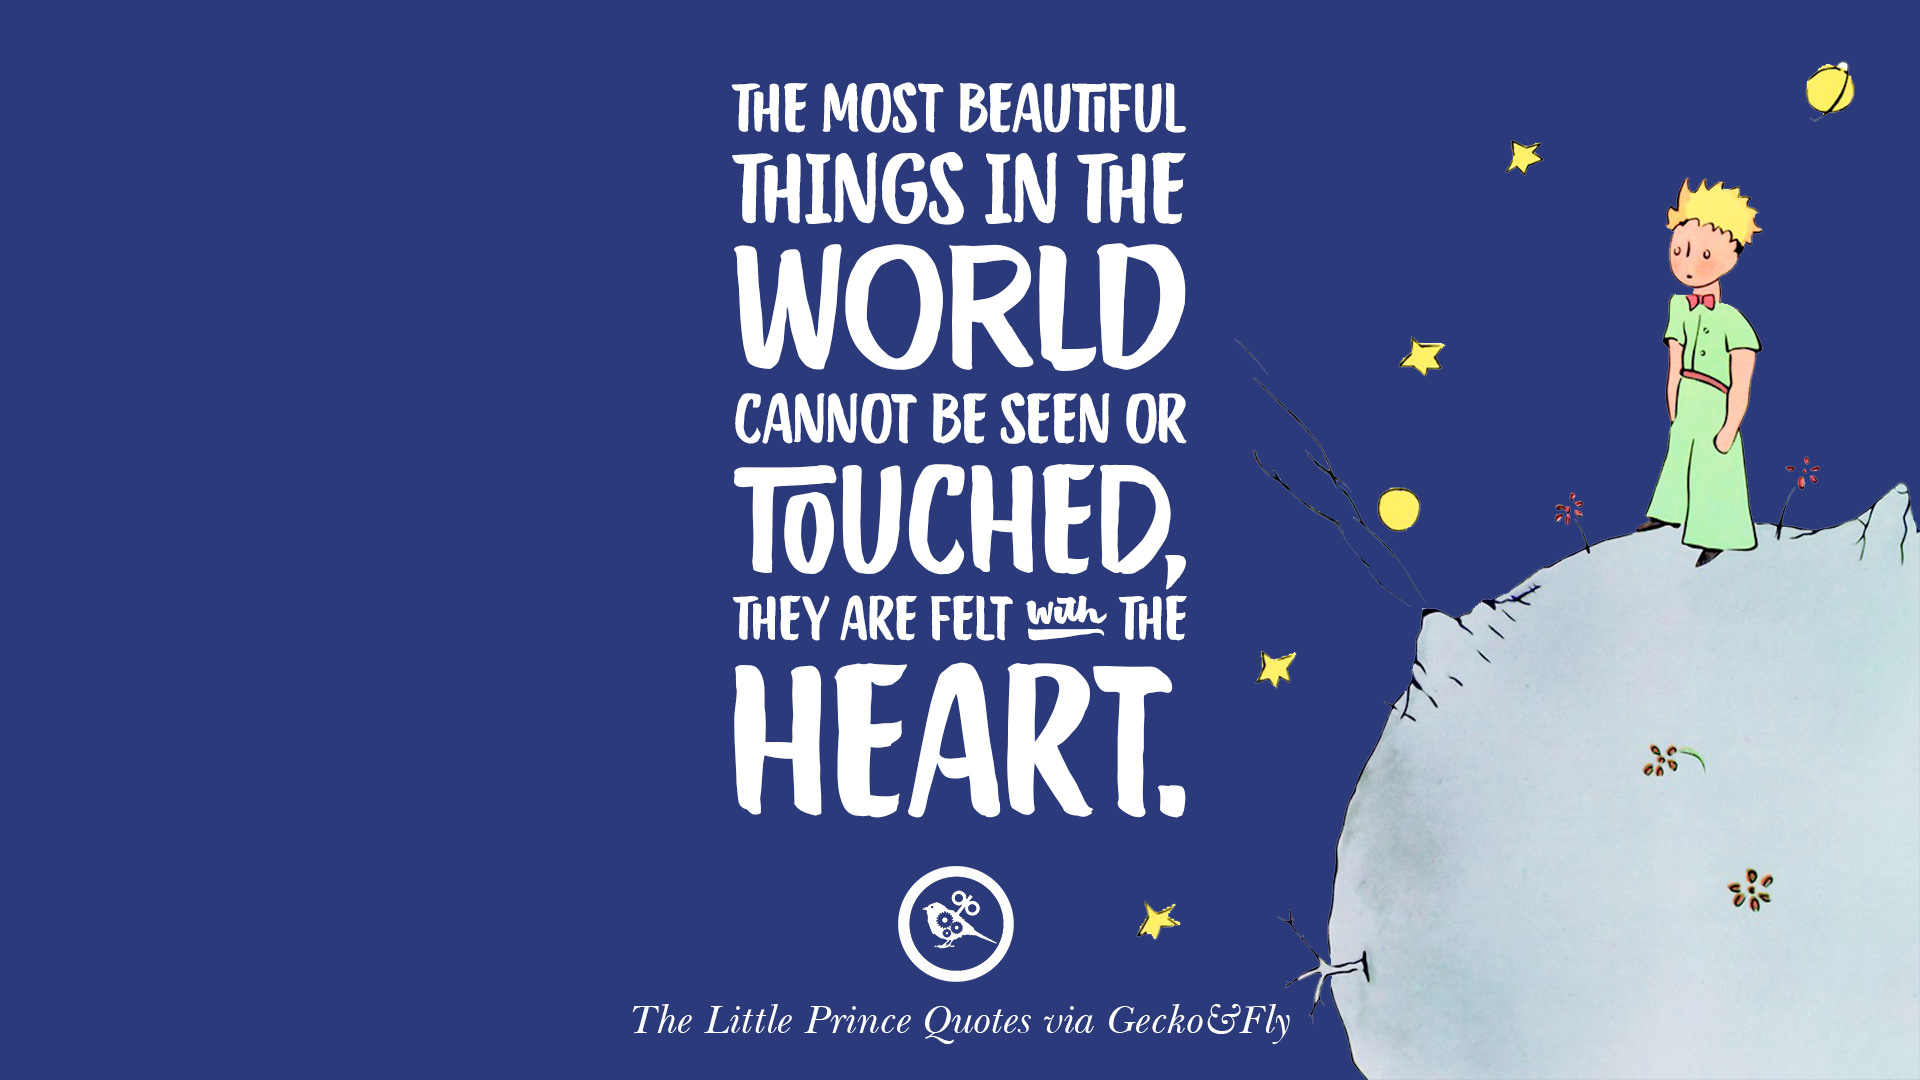 12 Quotes By The Little Prince On Life Lesson True Love And Responsibilities